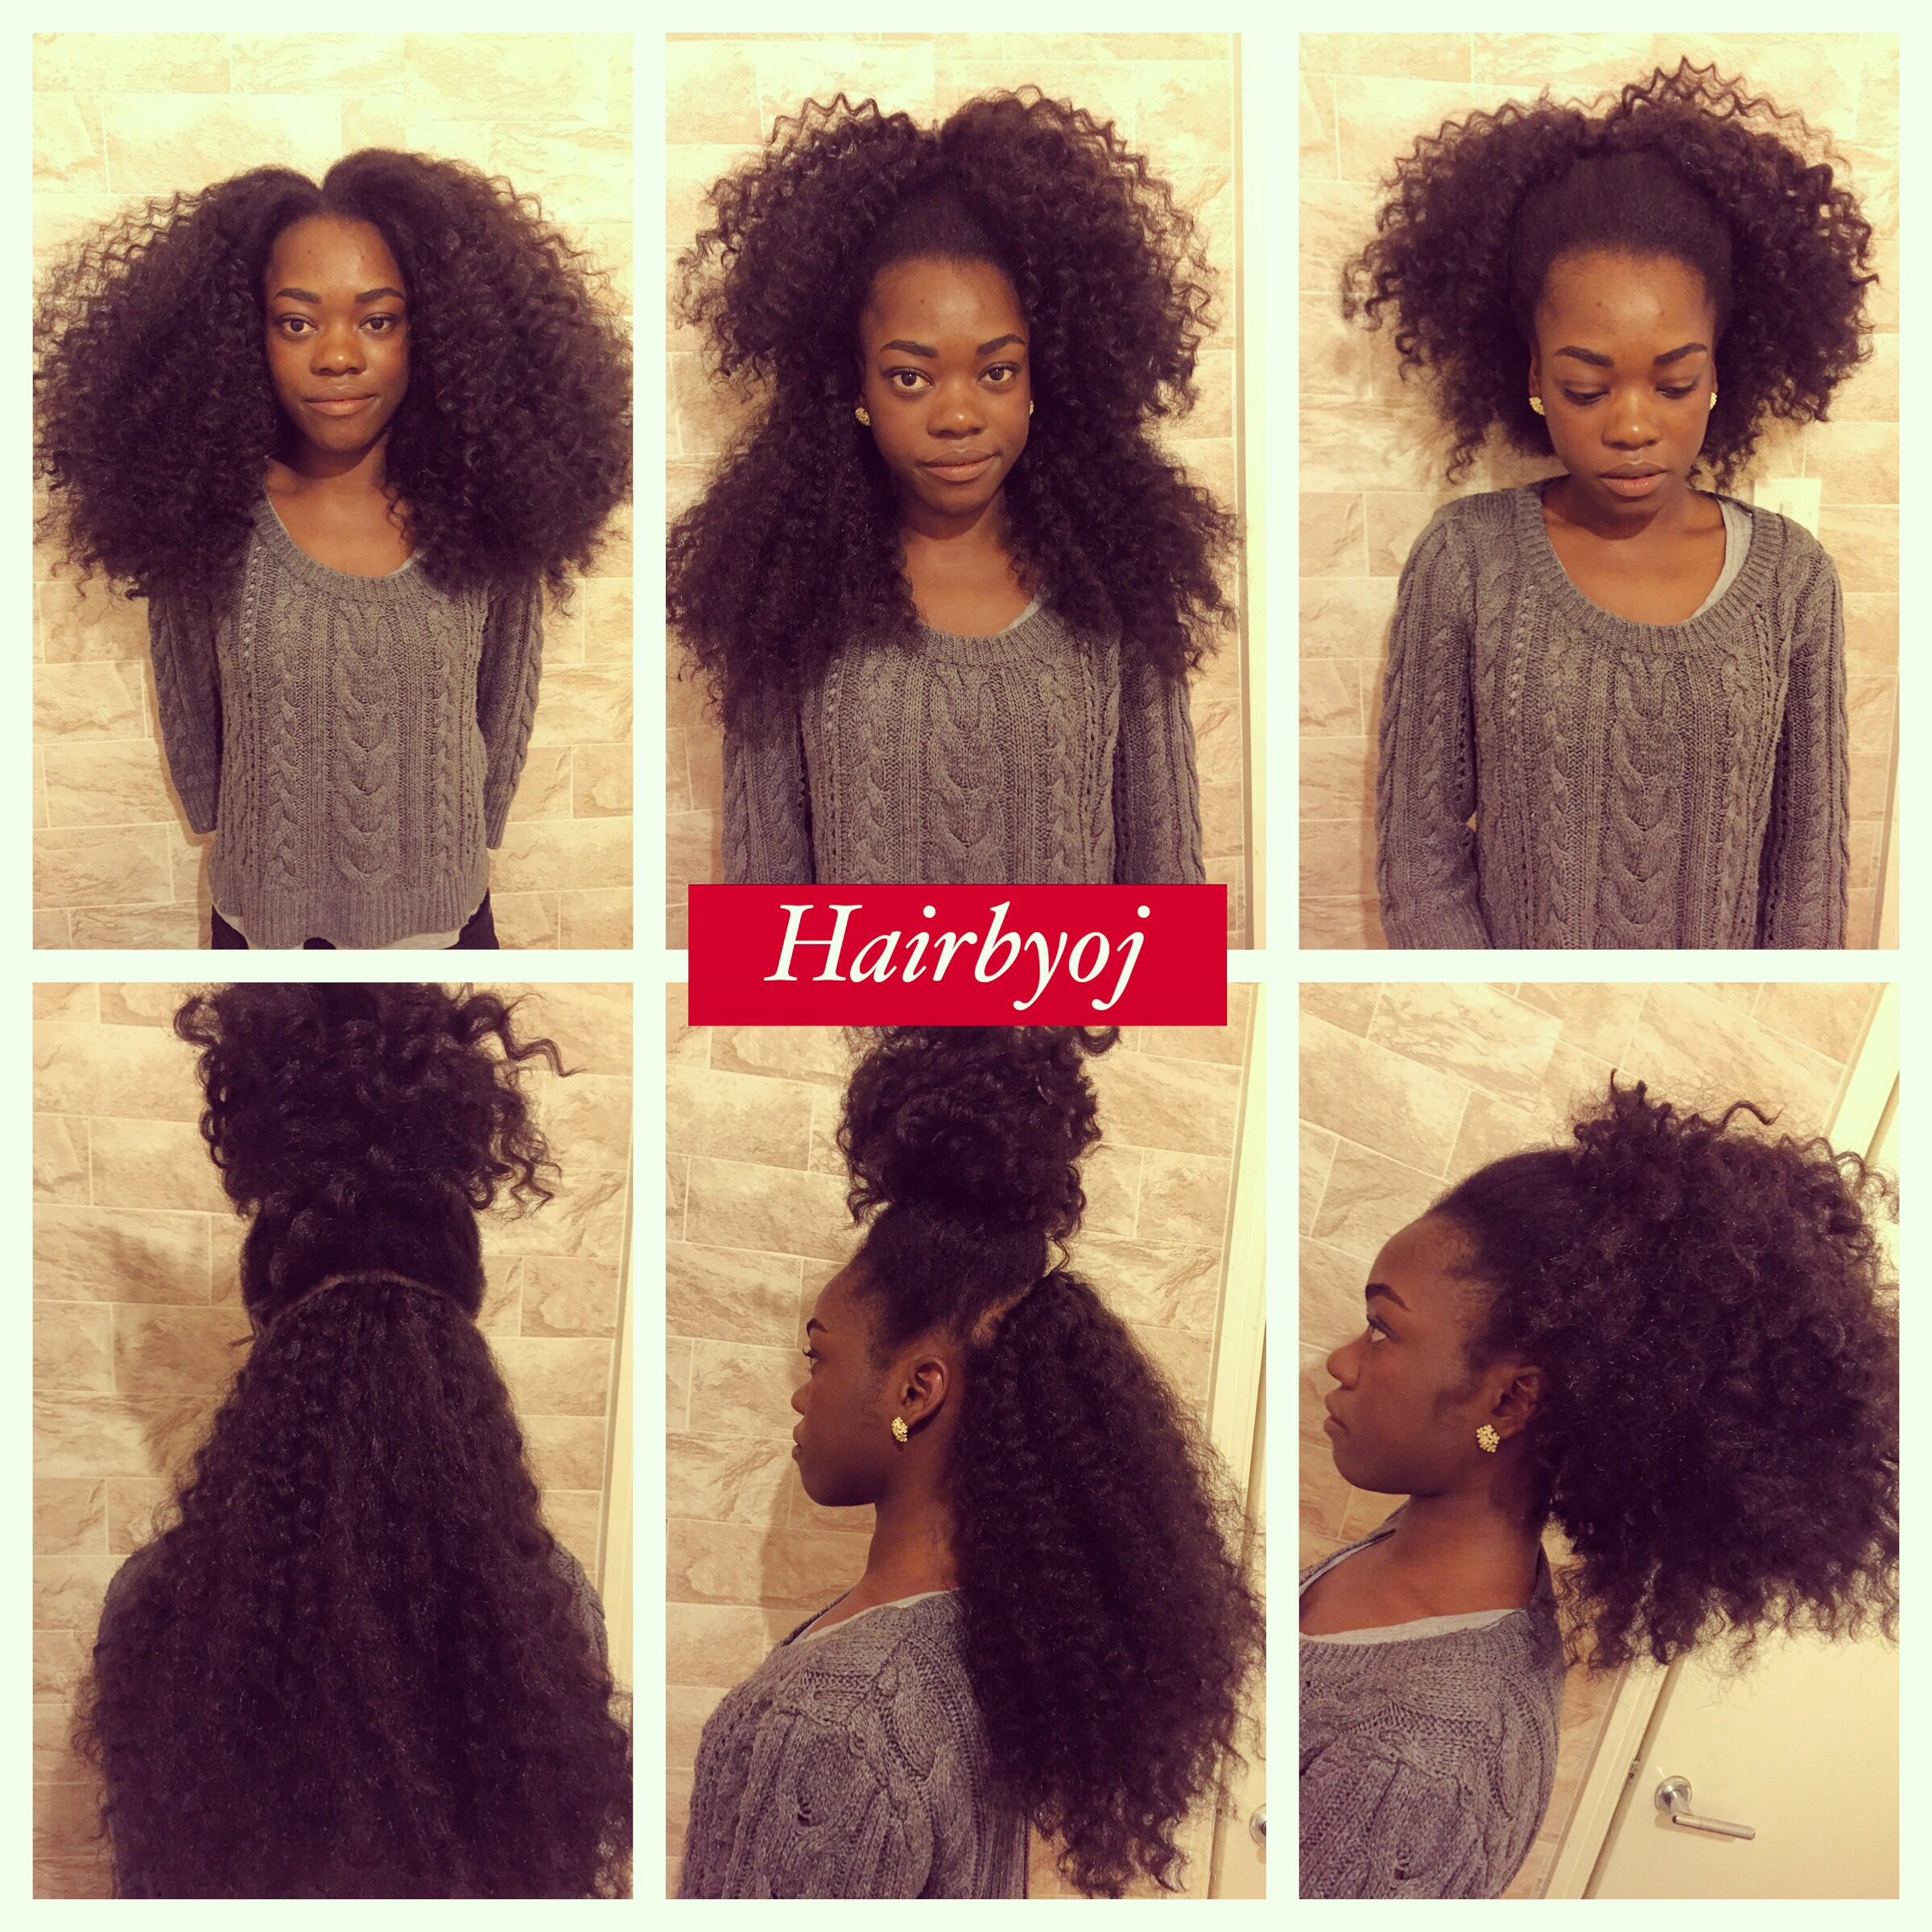 Crochet Braids With Leave Out : ... knotless vixen crochet braids with perimeter leave out ? hairbyoj